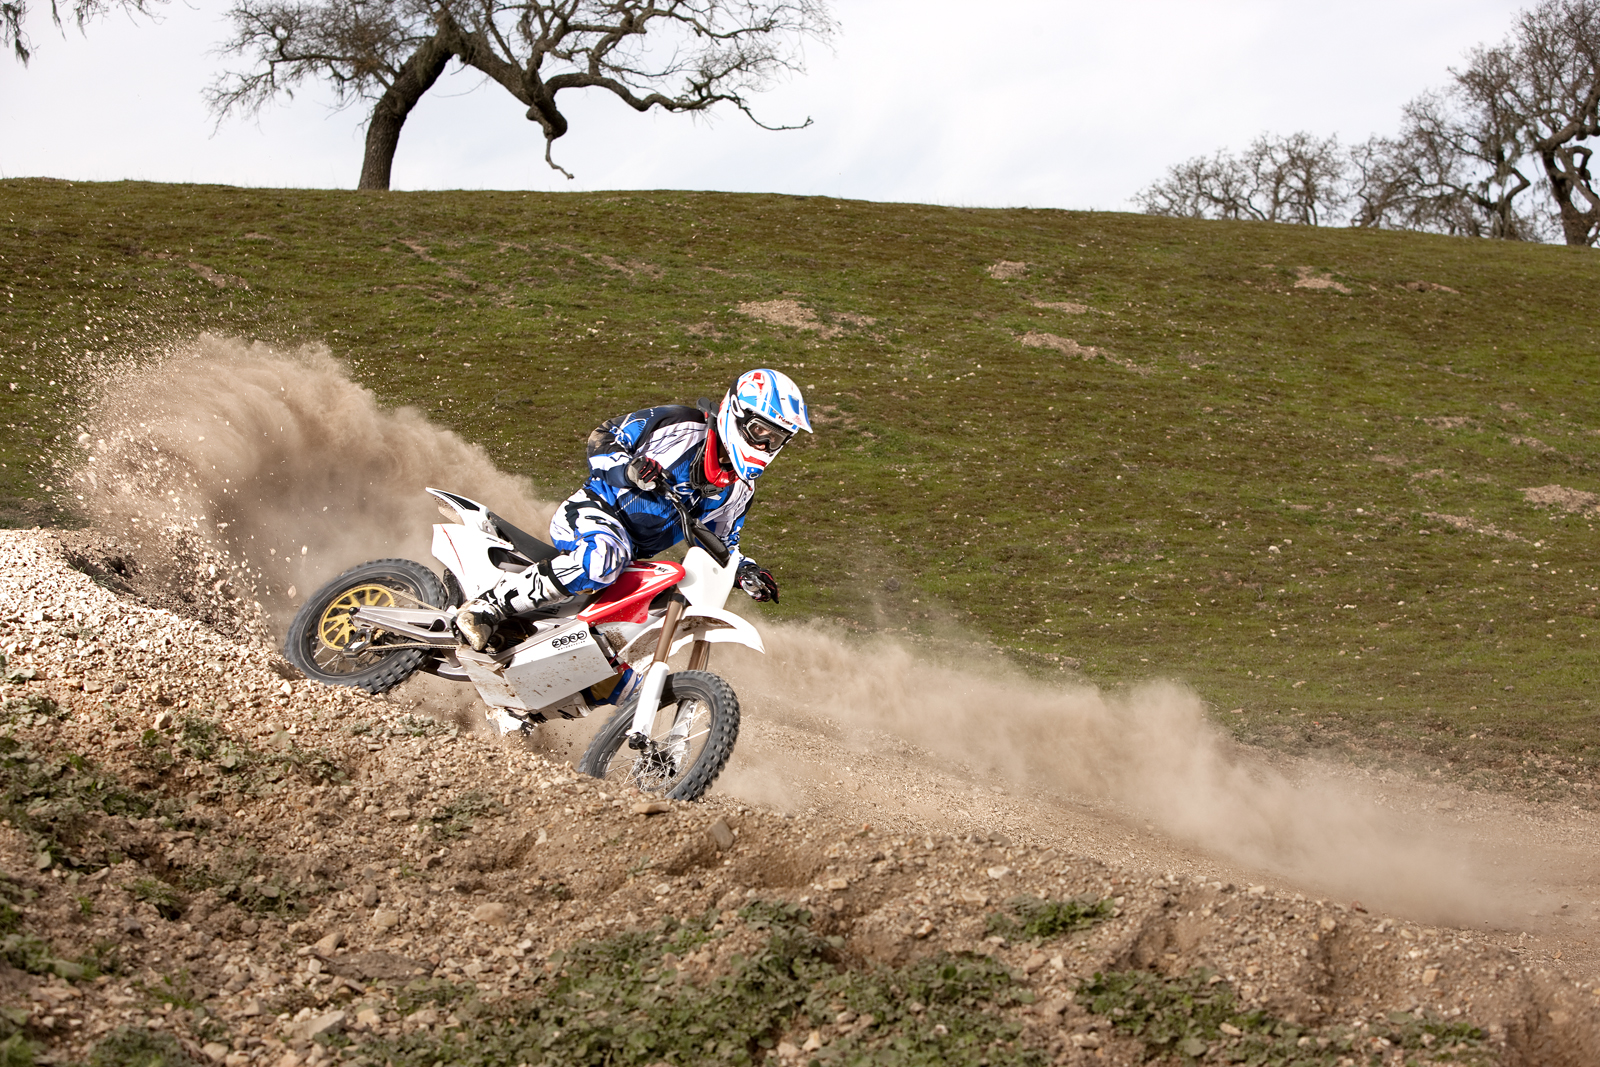 '.2010 Zero MX Electric Motorcycle: Zaca Station - Rock Blaster.'